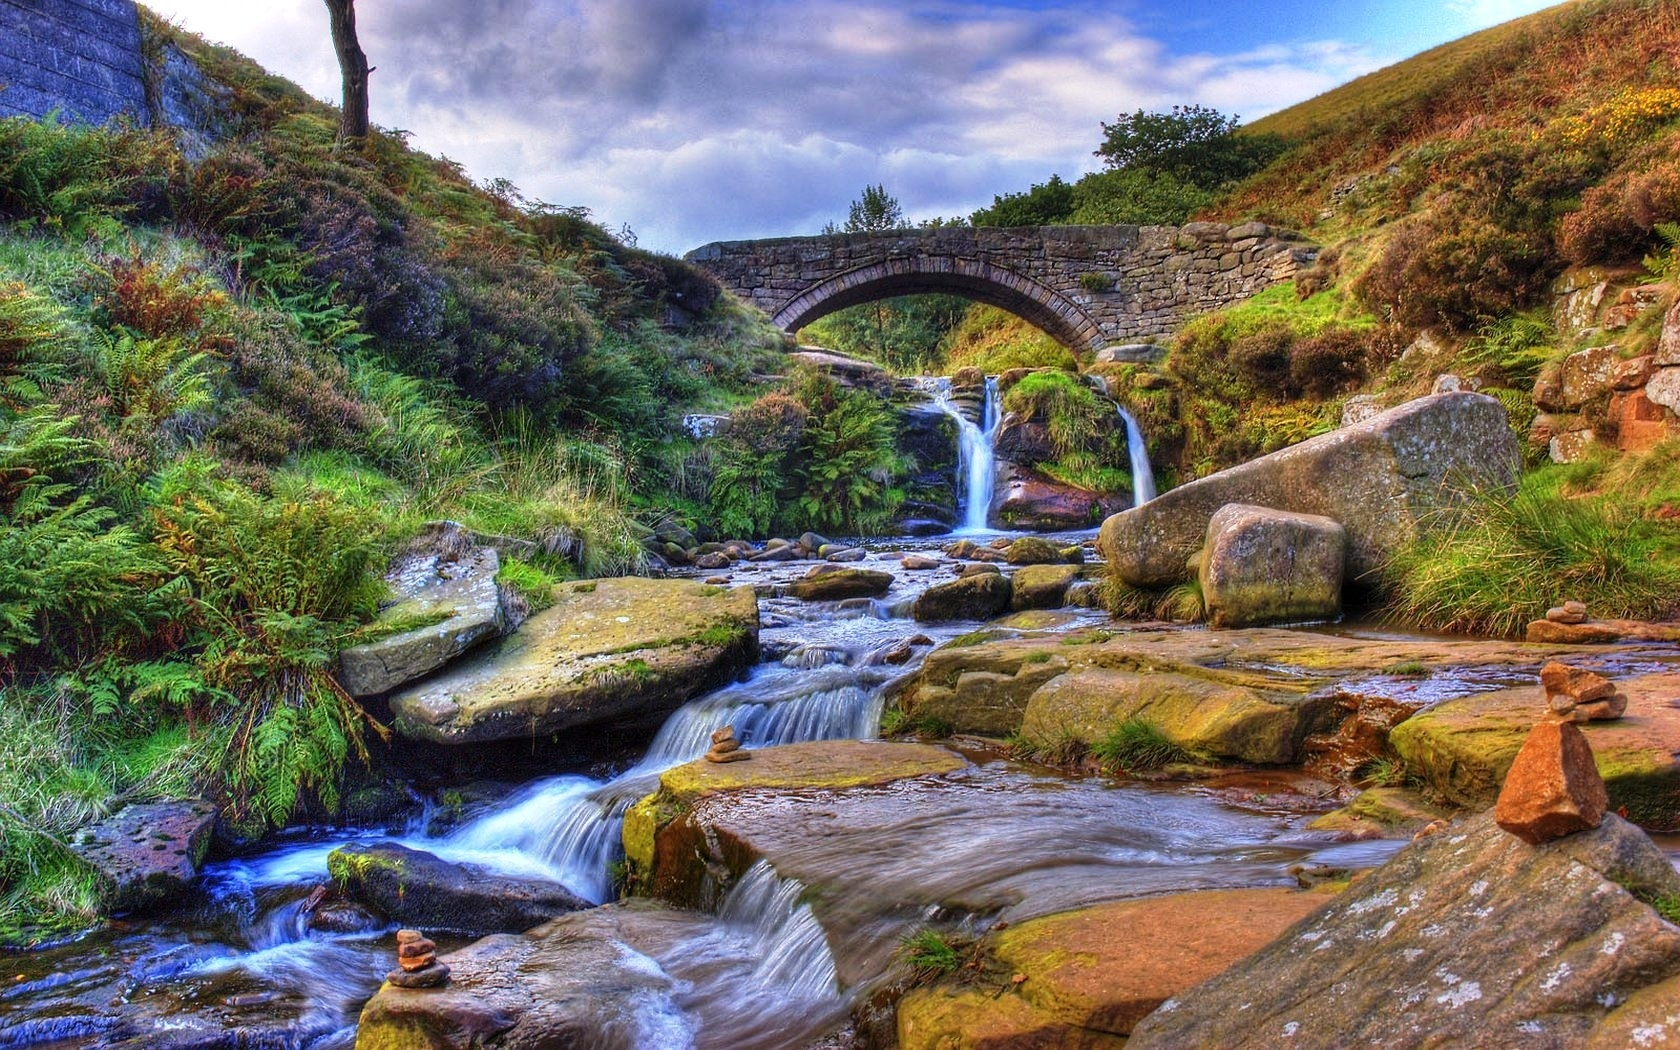 45208 download wallpaper Landscape, Nature, Waterfalls screensavers and pictures for free